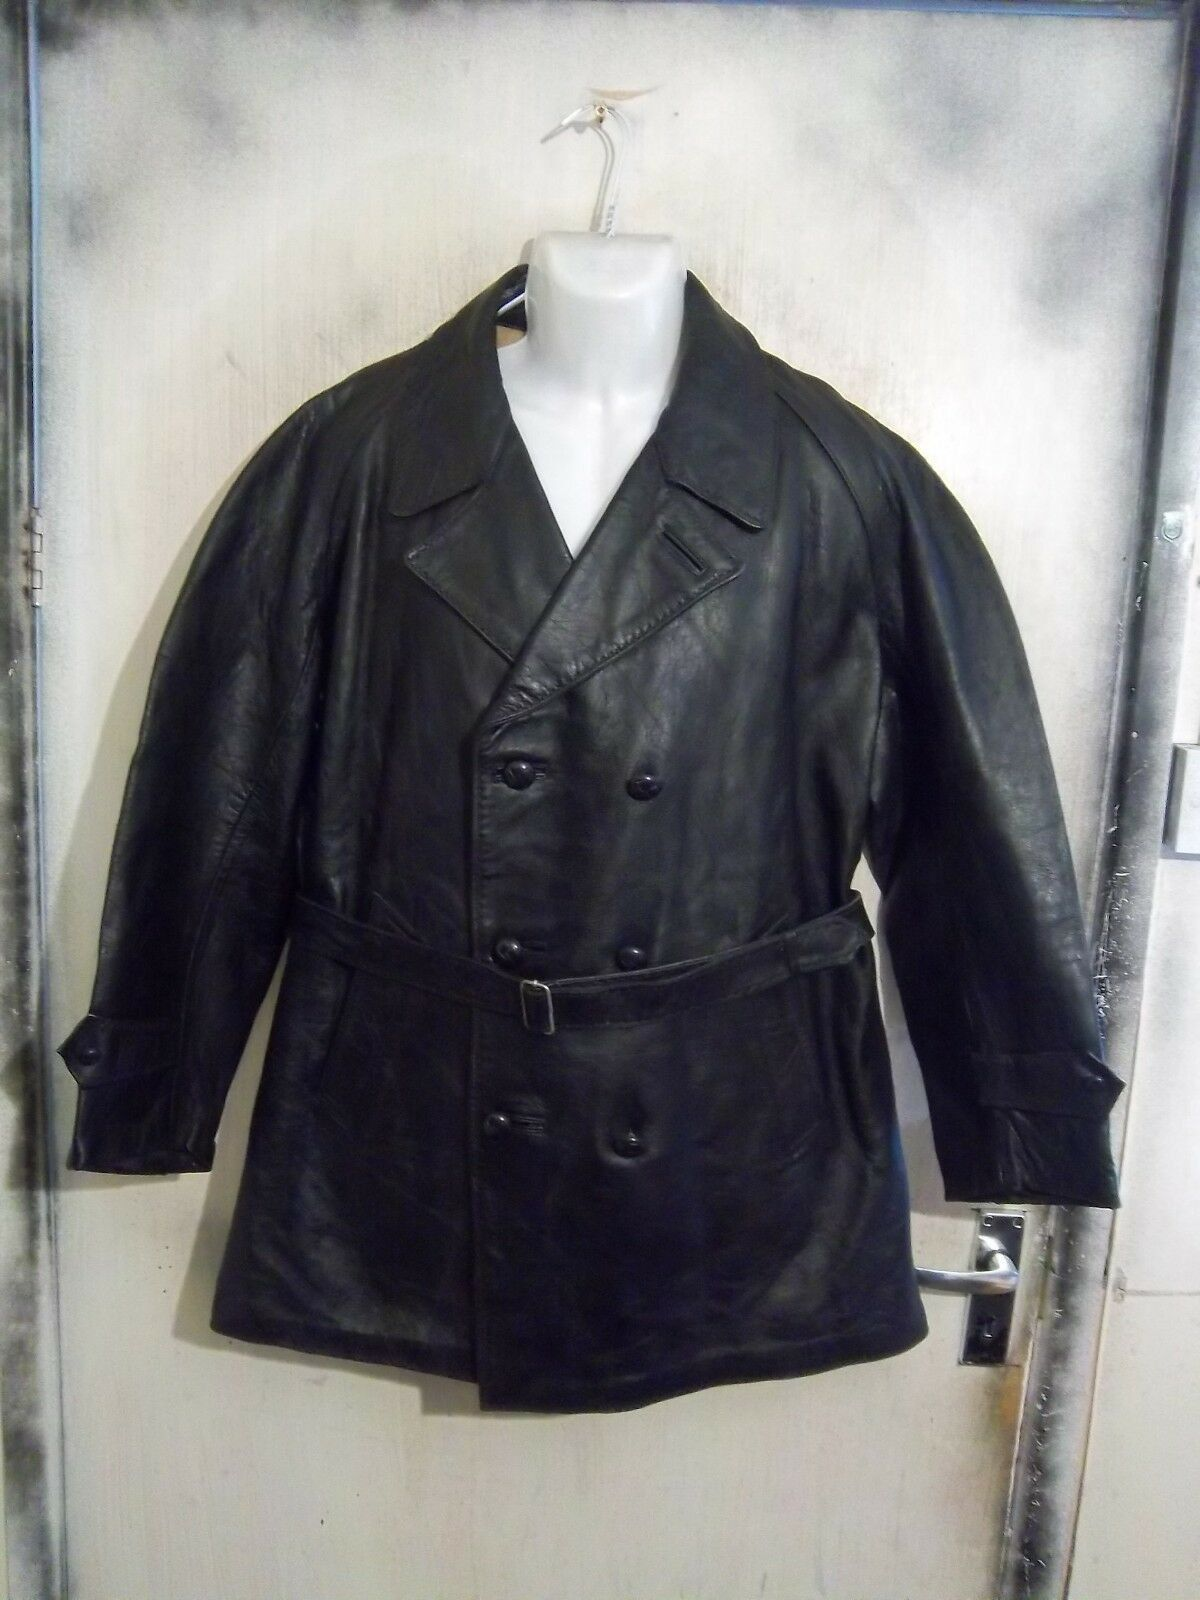 Vintage 40's Italian Police Officers Goatskin Leather Pea Coat Jacket Size XL Wool Lined, Motorcycle or Classic Car